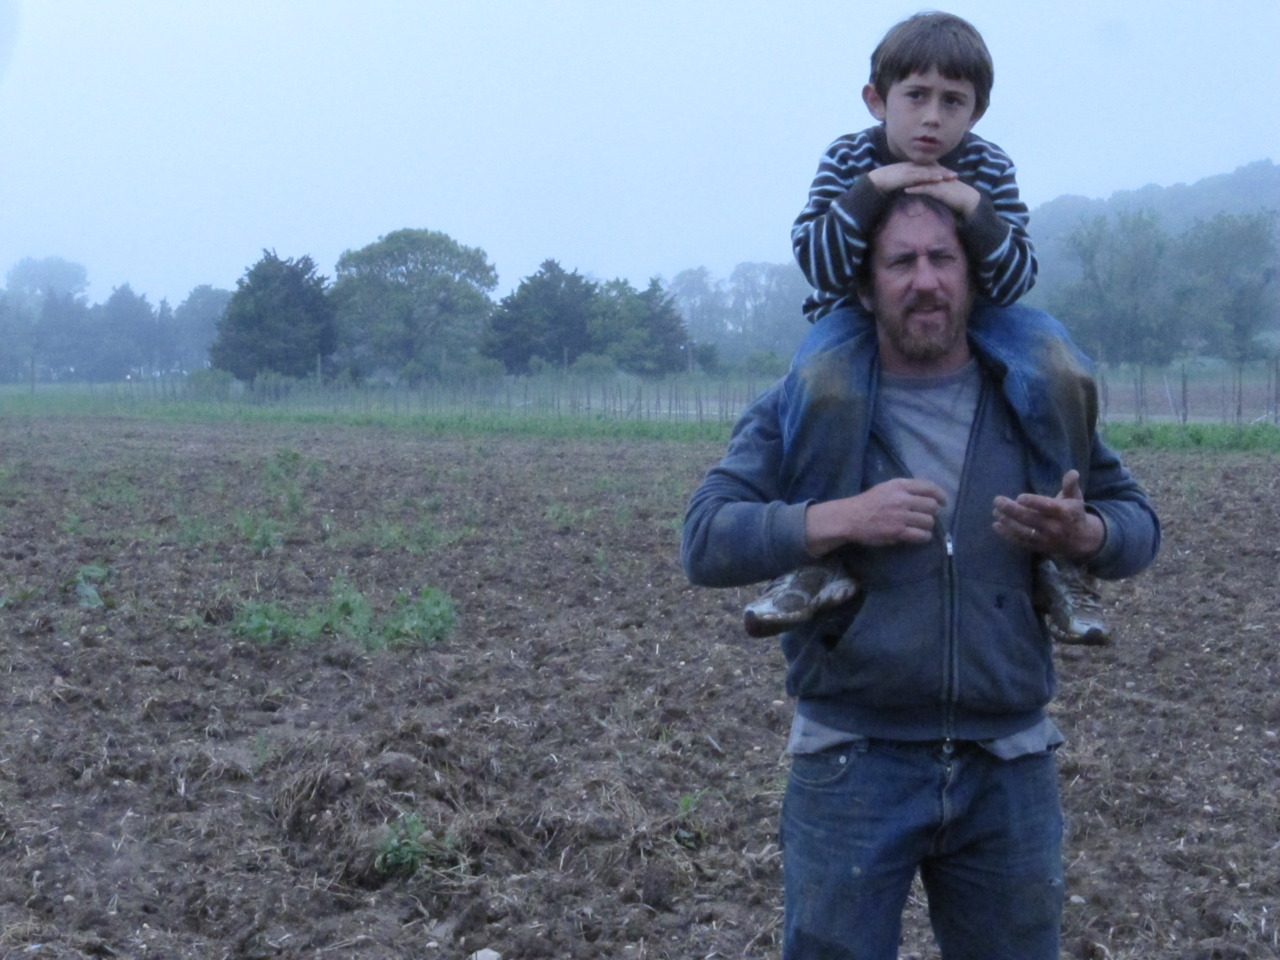 Farmer Chris Kaplan-Walbrecht and his son Forest giving us Brooklyn hipsters a tour of their lovely farm, Garden of Eve, in Riverhead, NY, May 2011    Forest knows  EVERYTHING  about the farm and all the organisms that abide there. The scope and breadth of his knowledge at 7 years of age is humbling/disarming.   Also, Garden of Eve = Best name for a farm  EVER.  Yeah, I'm biased, so what!